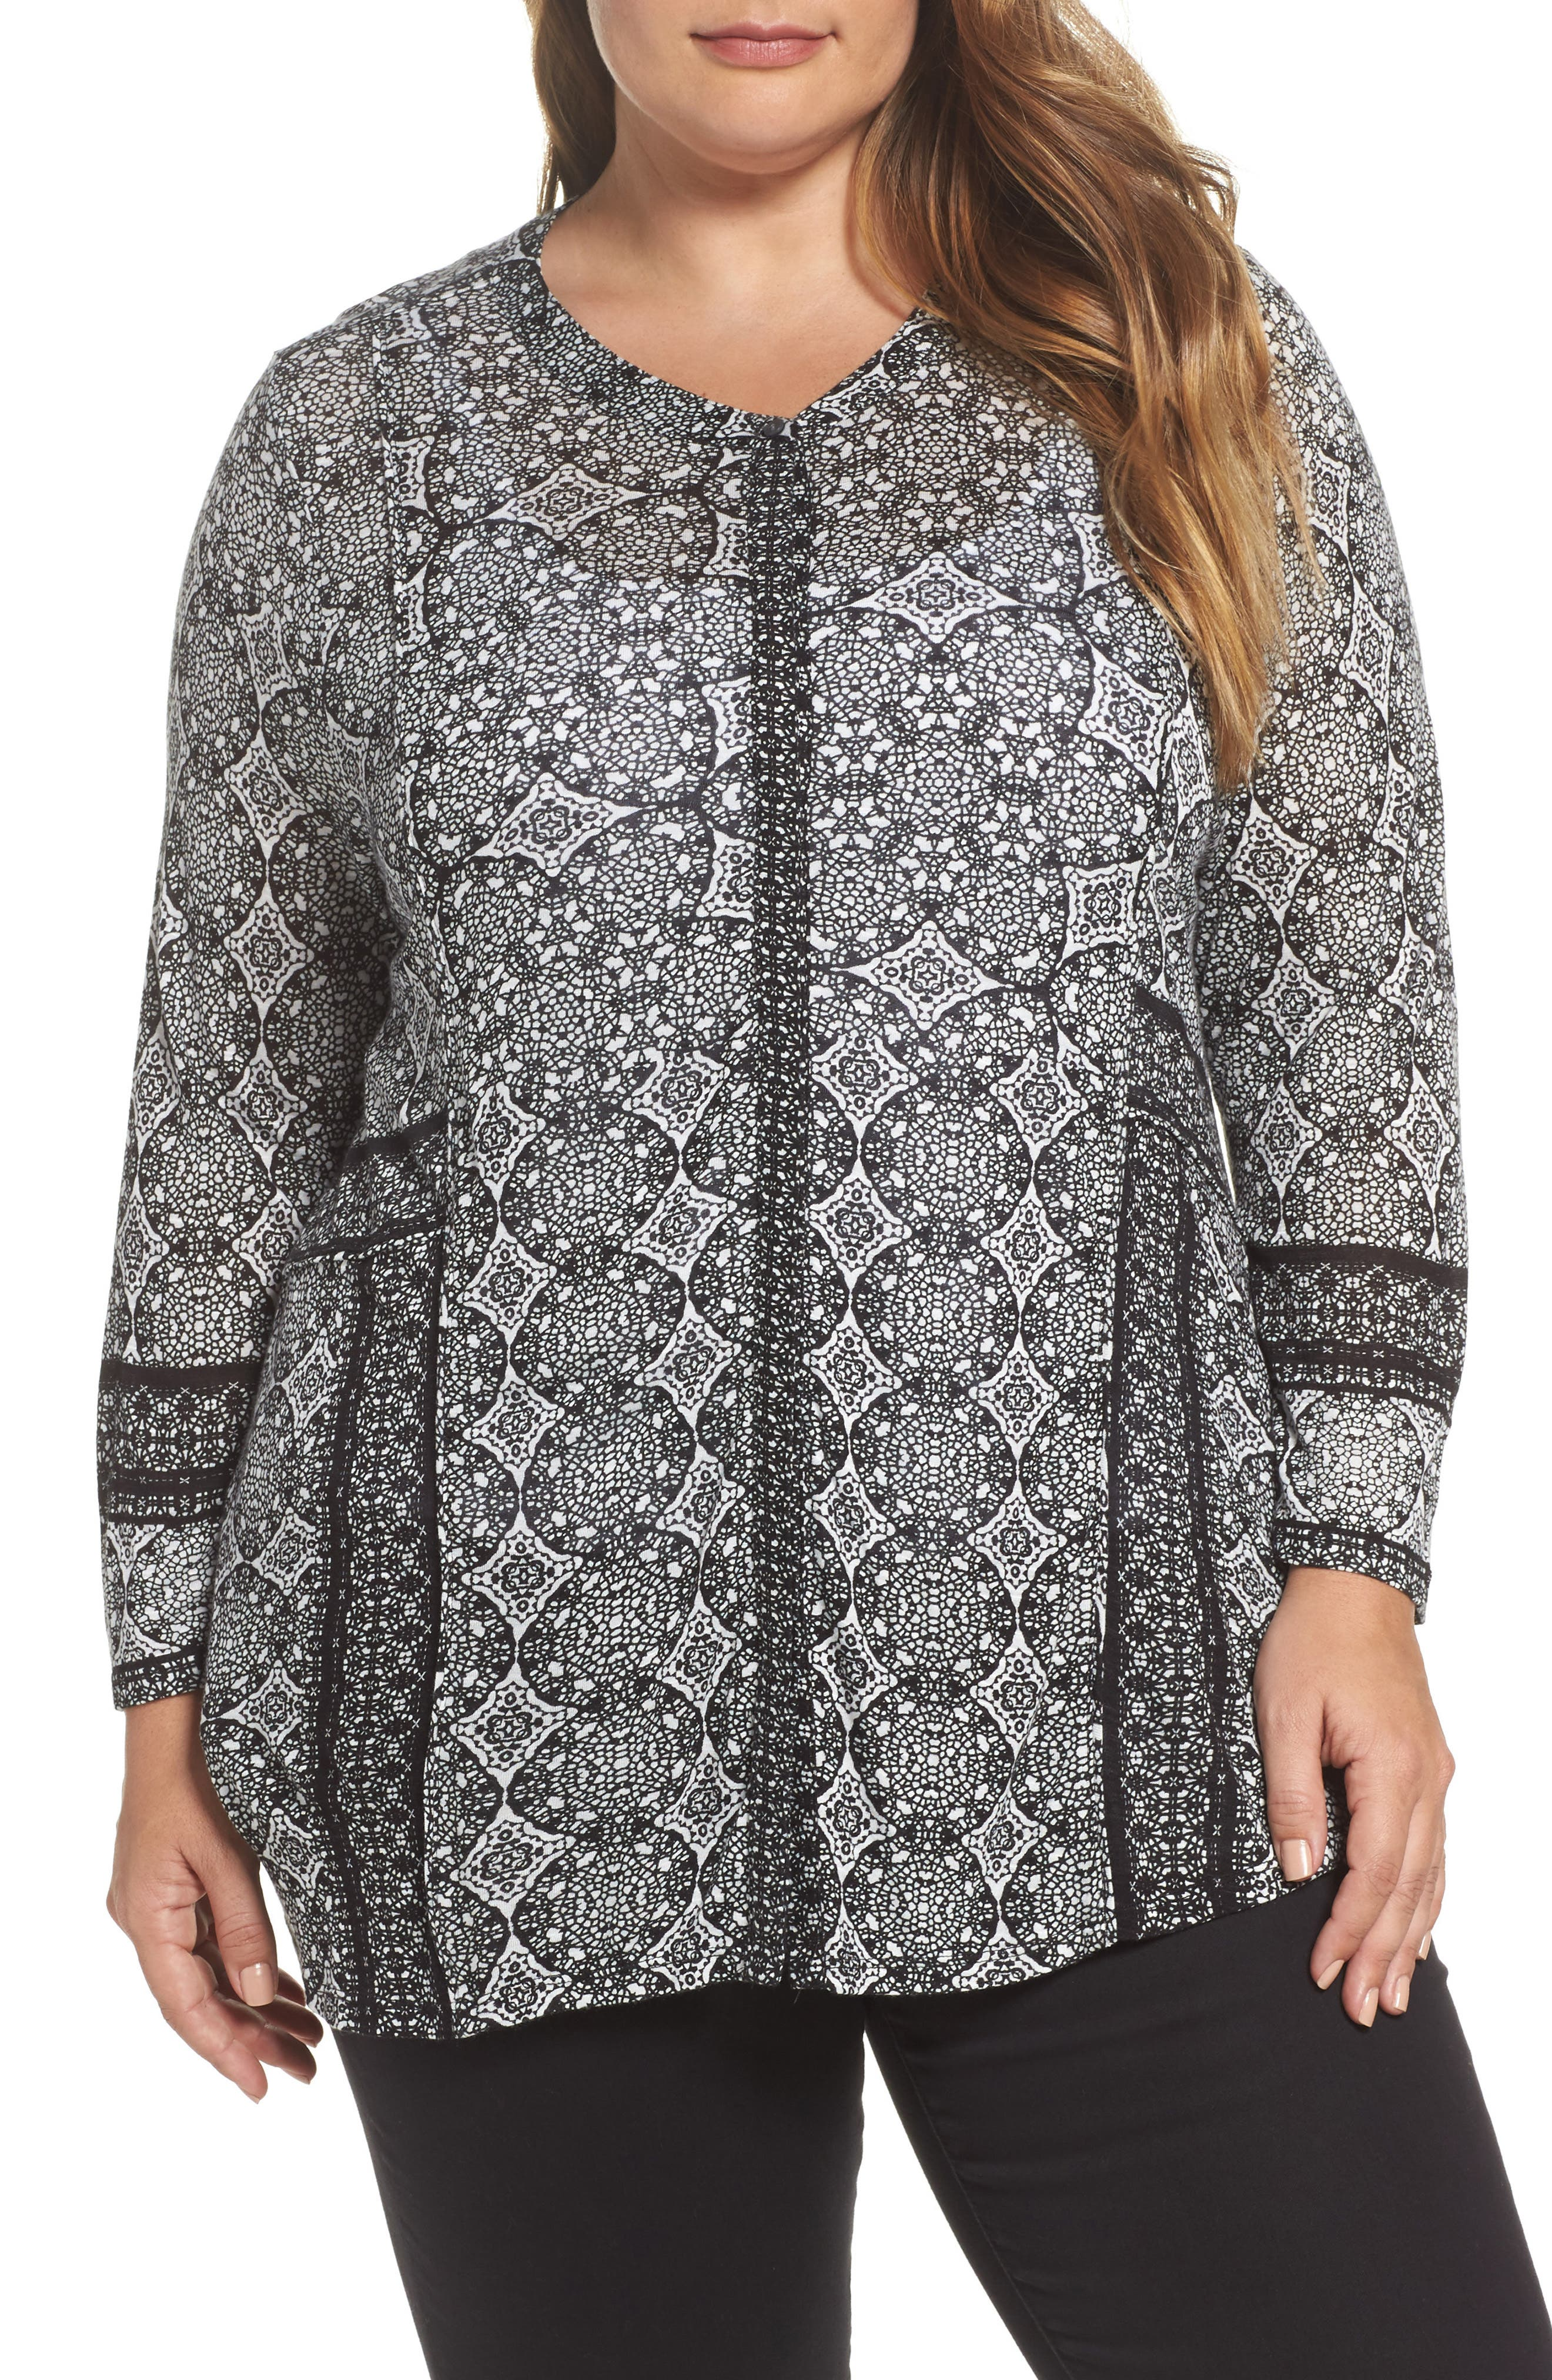 Main Image - Lucky Brand Geo Print Button-Up Shirt (Plus Size)